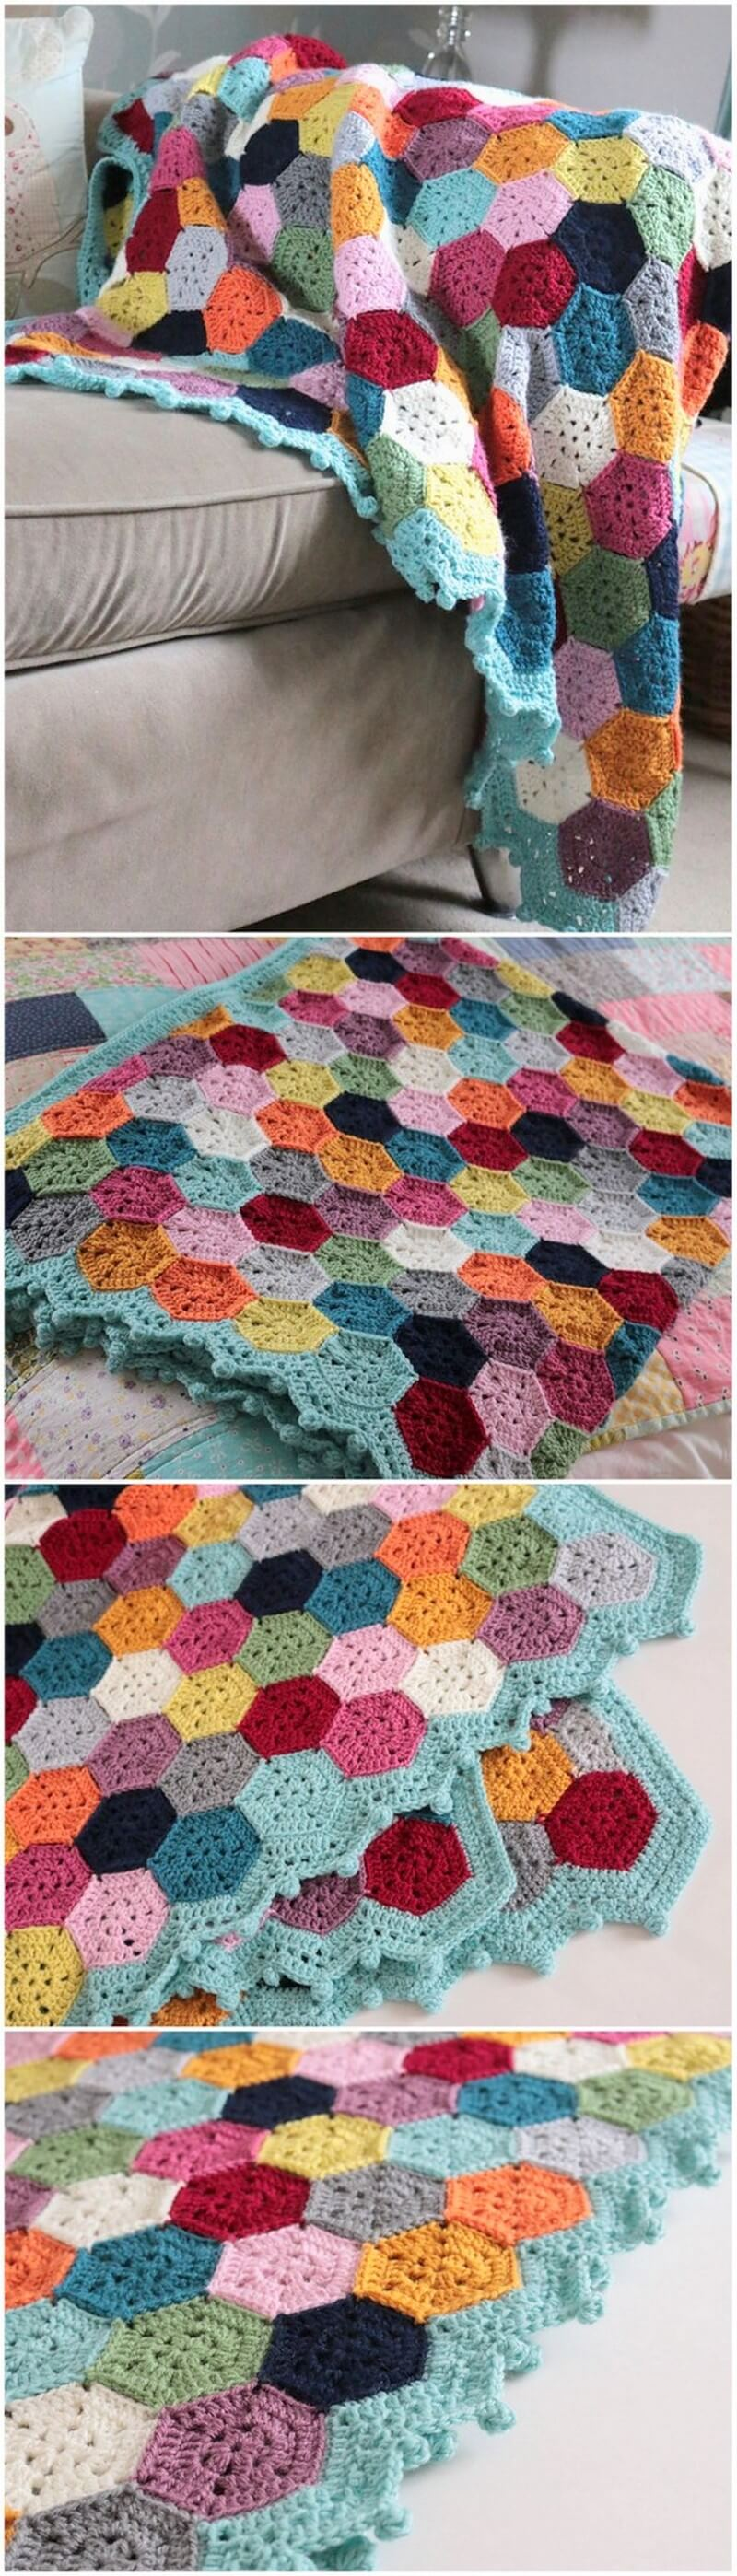 Easy Crochet Blanket Pattern (2)